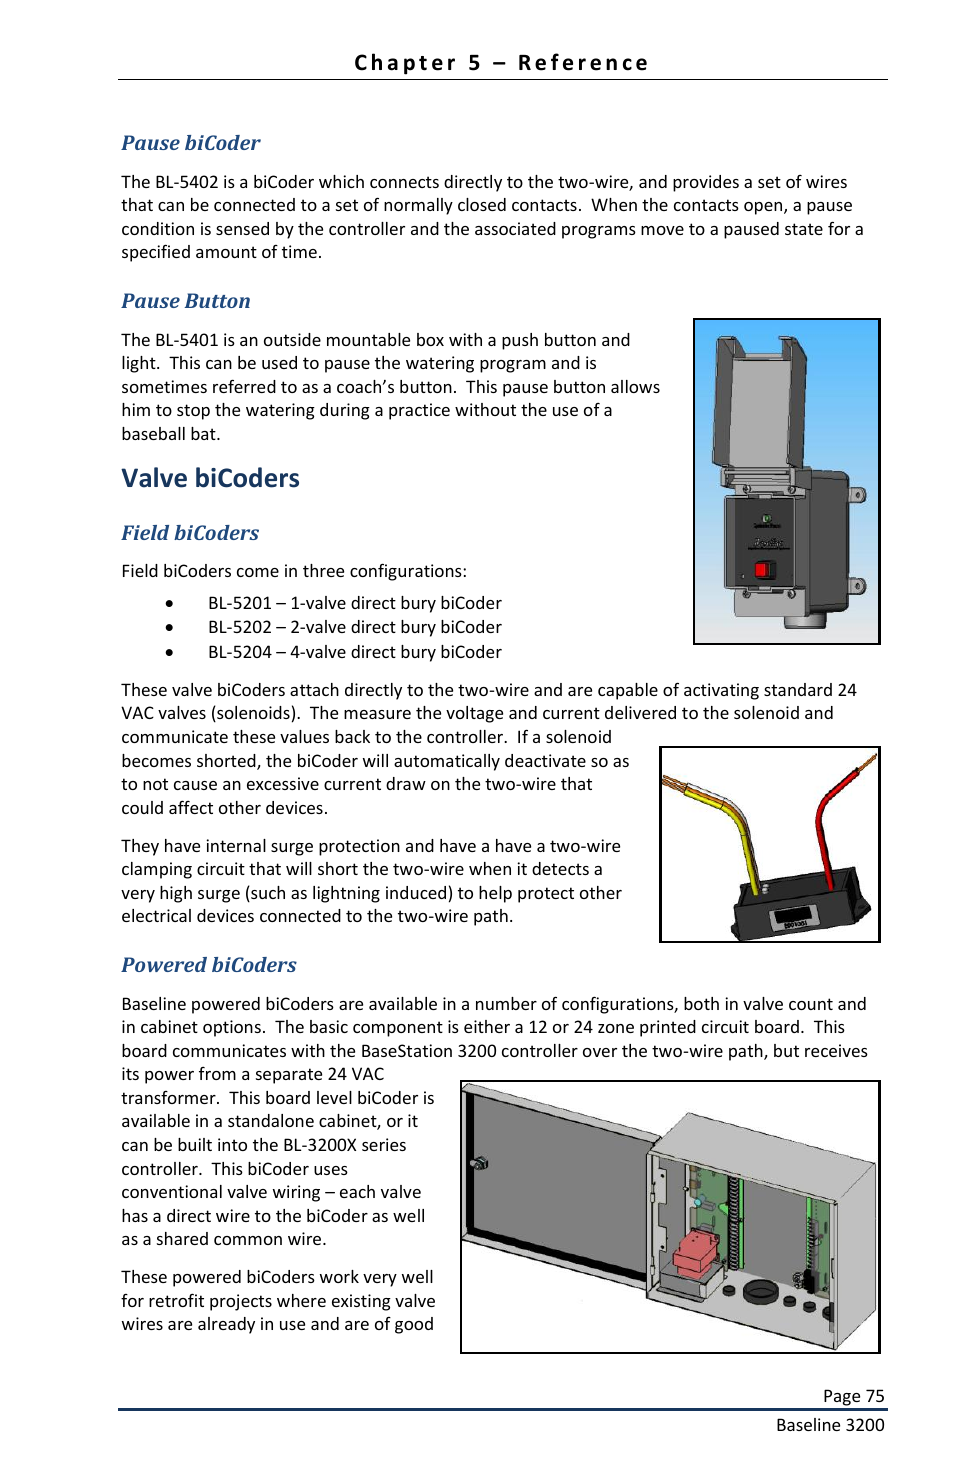 Valve Bicoders Baseline Systems Basestation 3200 User Manual Two Station Start Stop Wiring Page 77 82